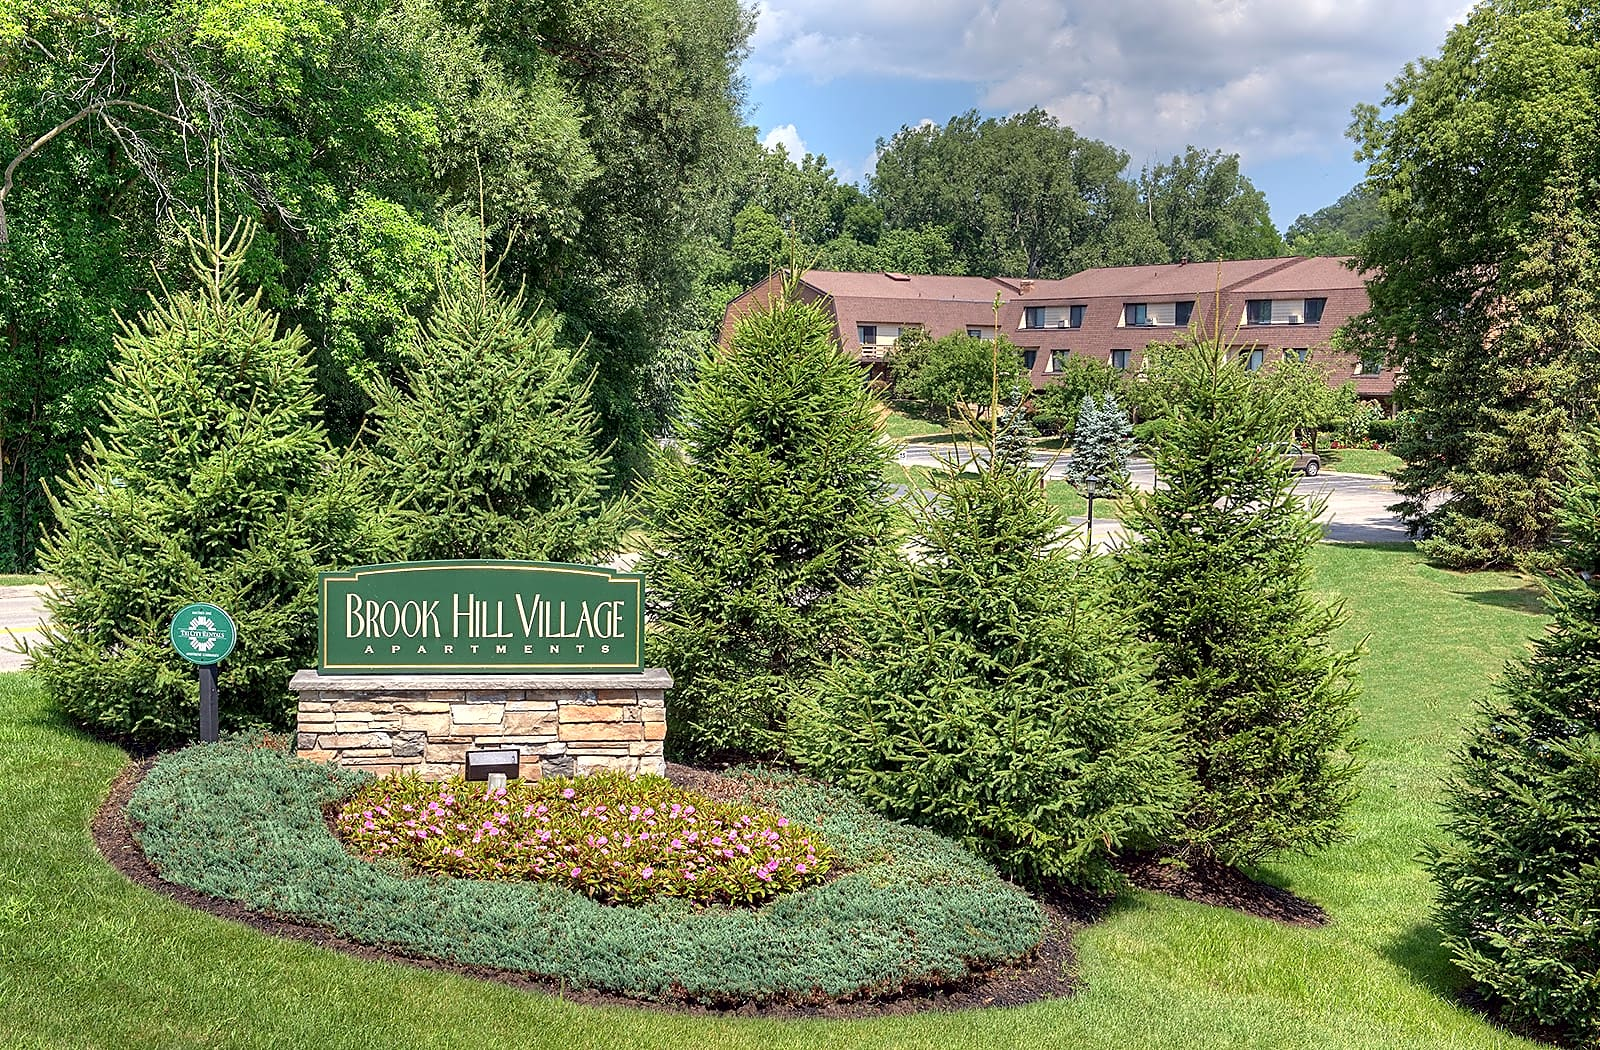 Apartments Near Fisher Brook Hill Village Apartments for Saint John Fisher College Students in Rochester, NY